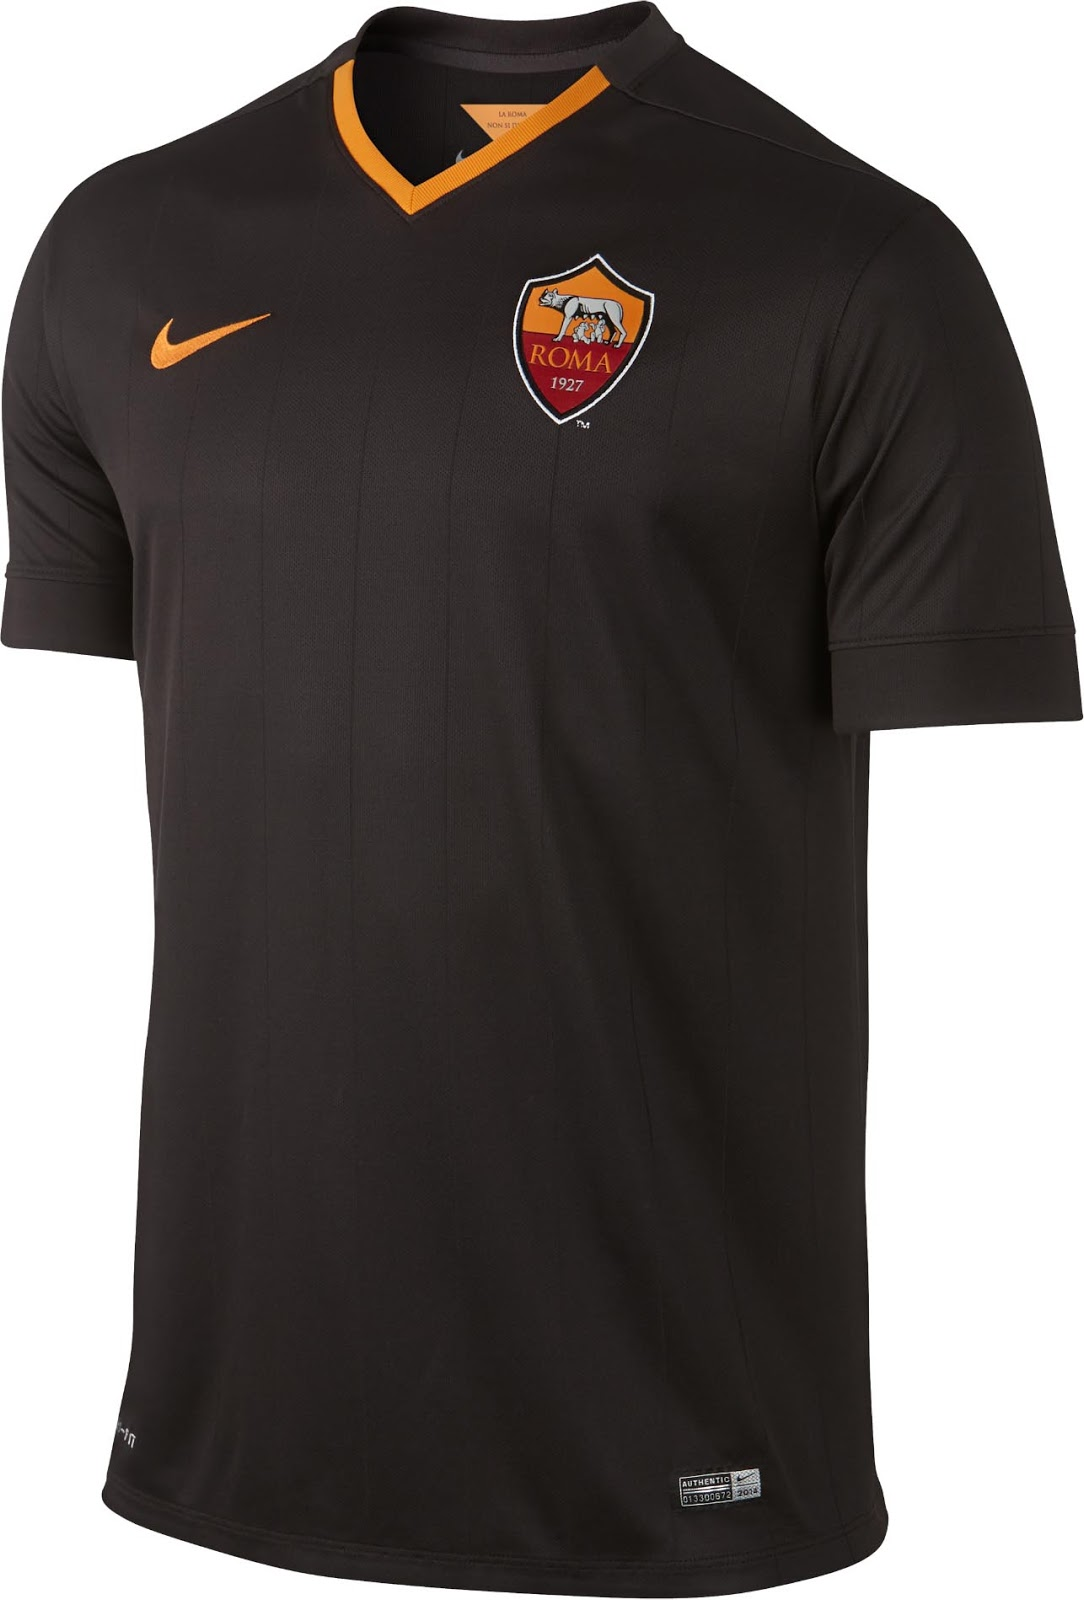 save off 7e4cf 70c91 AS Roma 2014-15 Home, Away and Third Jersey Shirt Kit ...